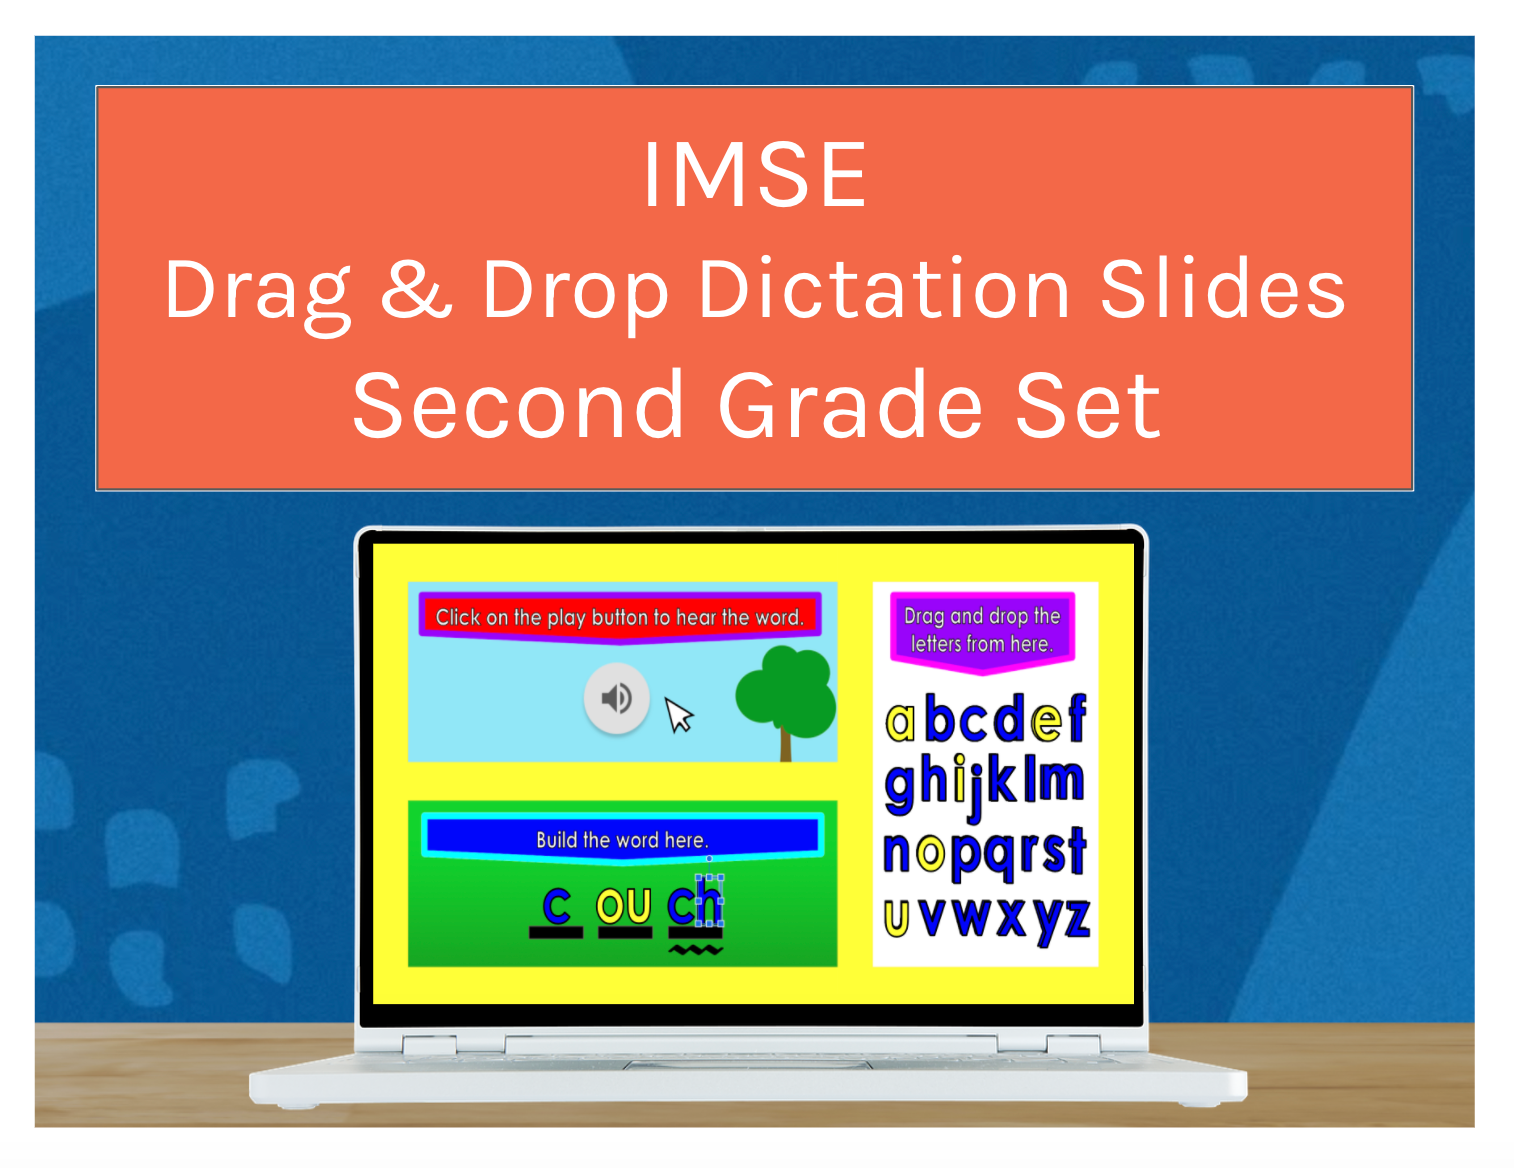 IMSE Drag & Drop Grade 2 Dictation Slides